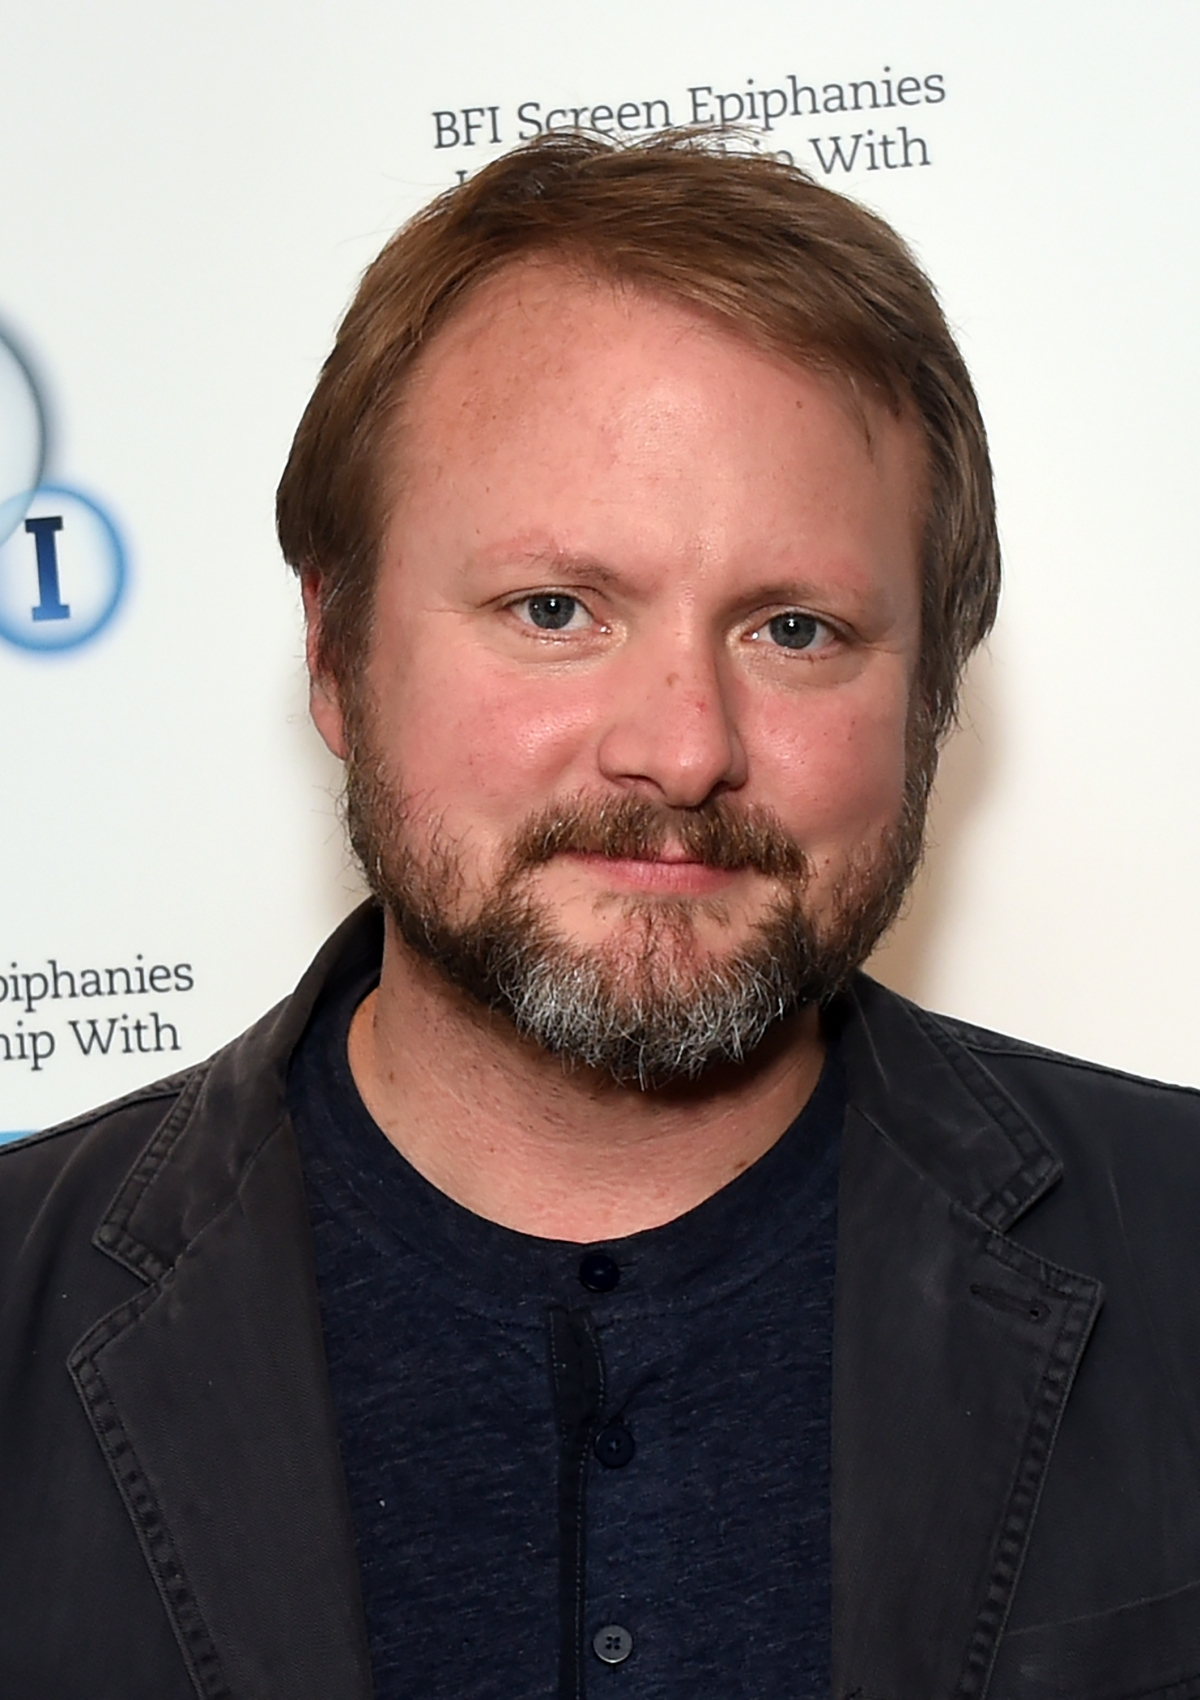 rian johnson directorrian johnson facebook, rian johnson likes reylo, rian johnson star wars, rian johnson net worth, rian johnson wiki, rian johnson prequels, rian johnson director, rian johnson breaking bad, rian johnson instagram, rian johnson breaking bad episodes